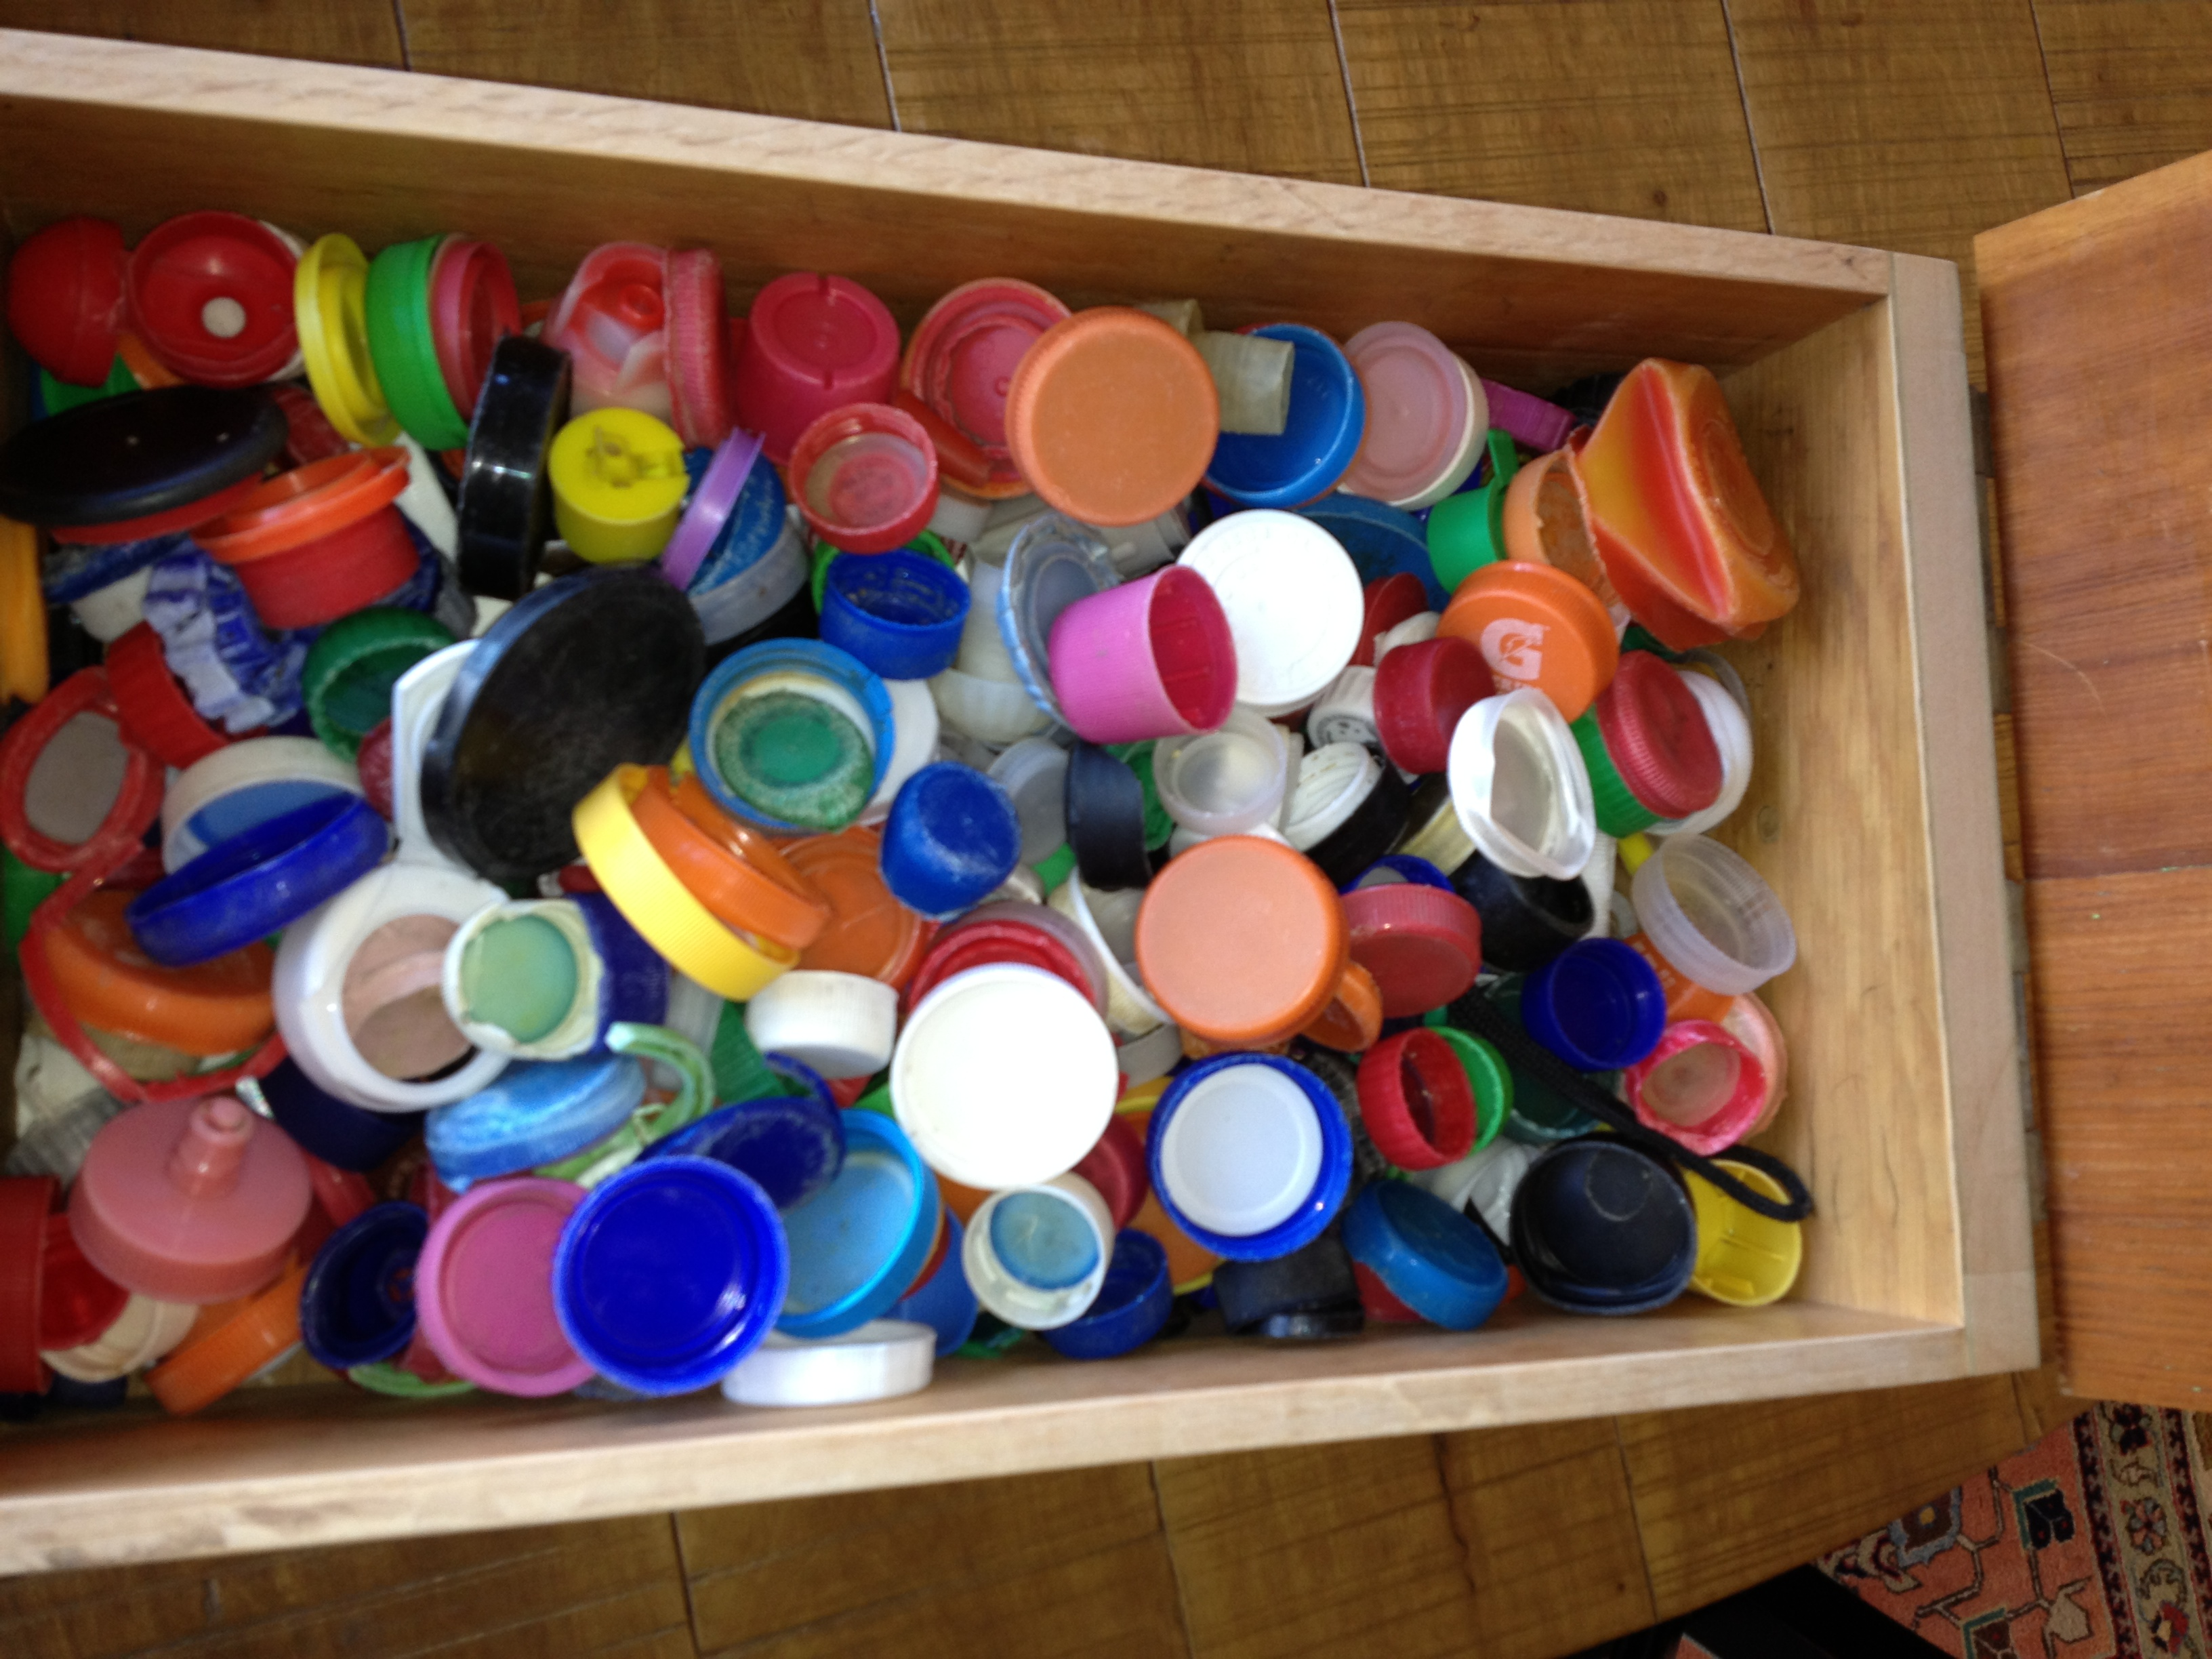 Jeff Hvid's collection of bottle caps